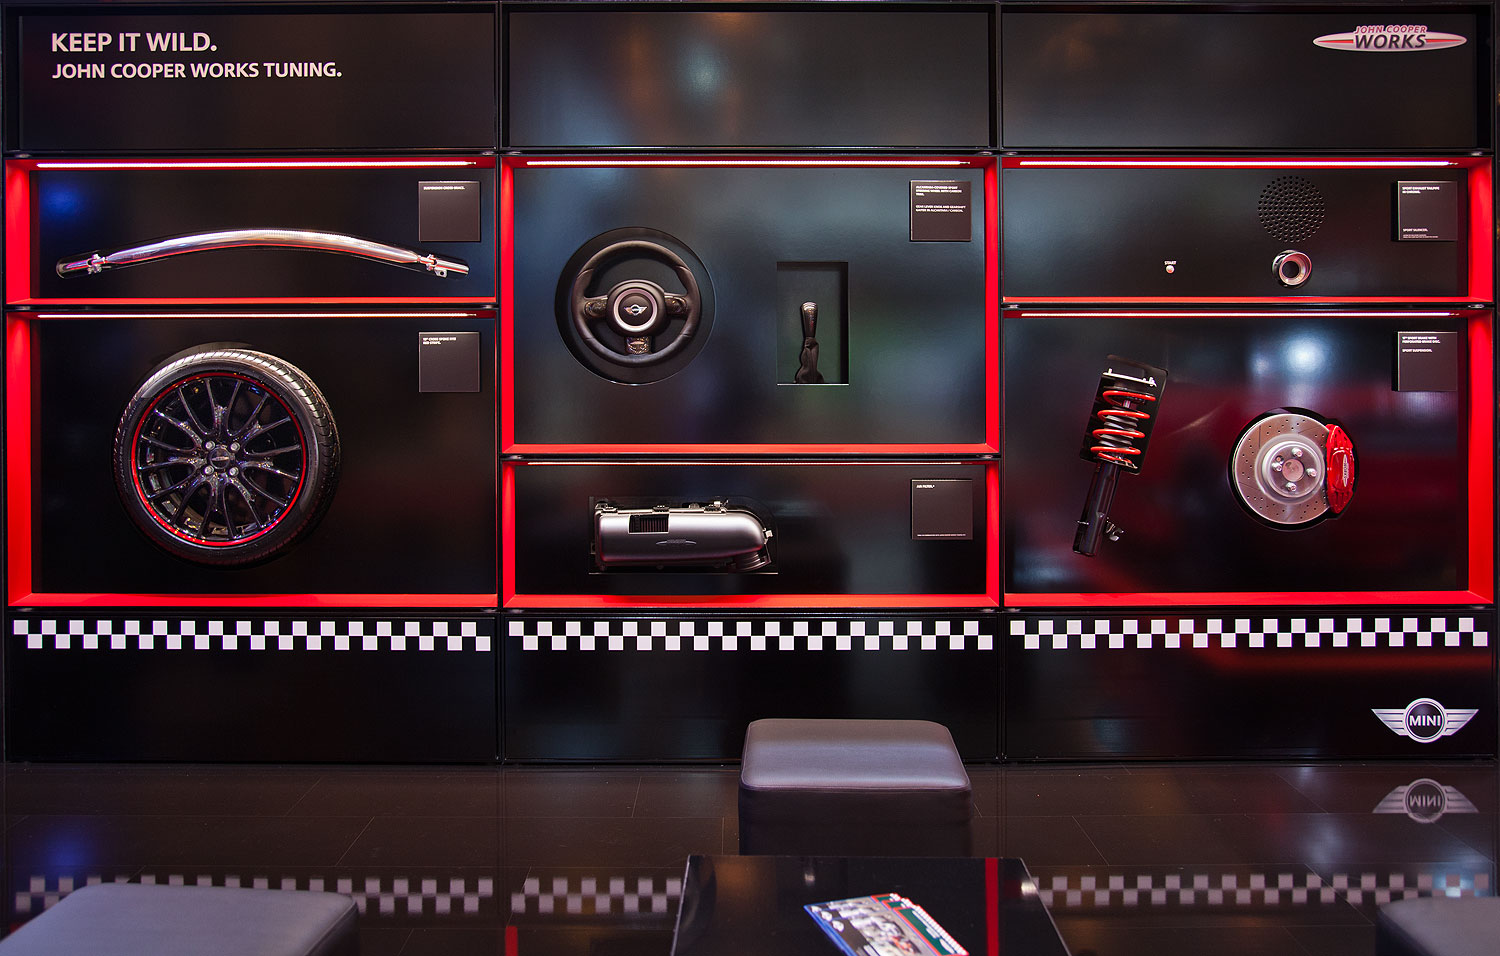 foto mini john cooper works air filter vergr ert. Black Bedroom Furniture Sets. Home Design Ideas